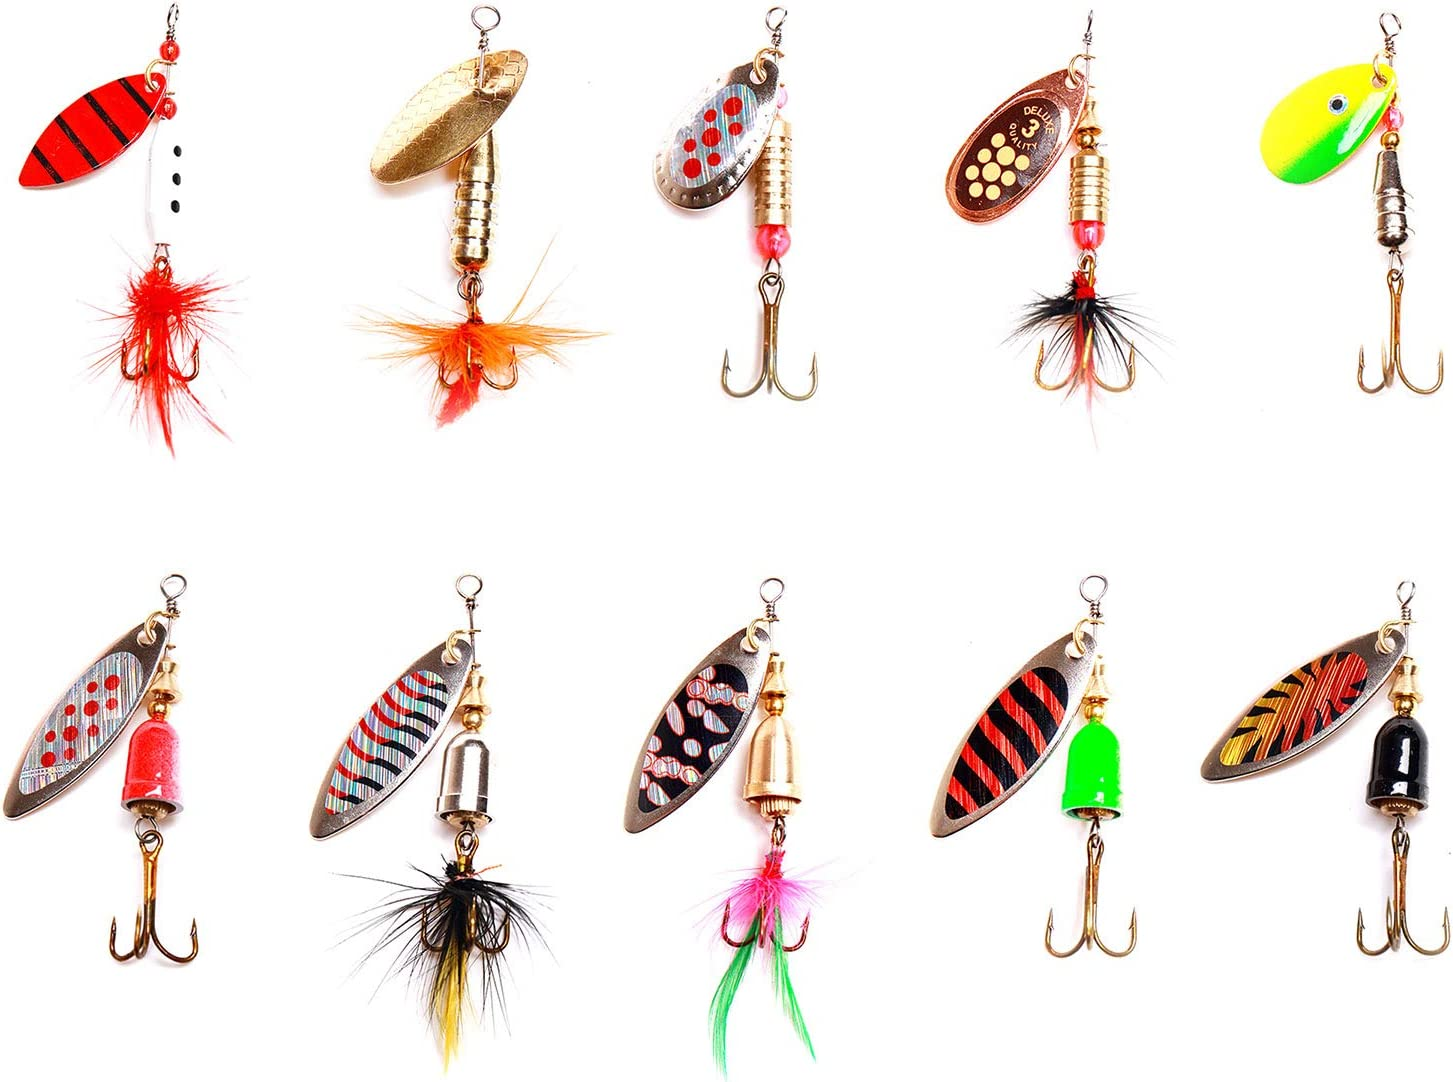 iBait 10pcs Spinnerbaits Fishing Wholesale Hard Baits 55% OFF Lures Spinner Metal